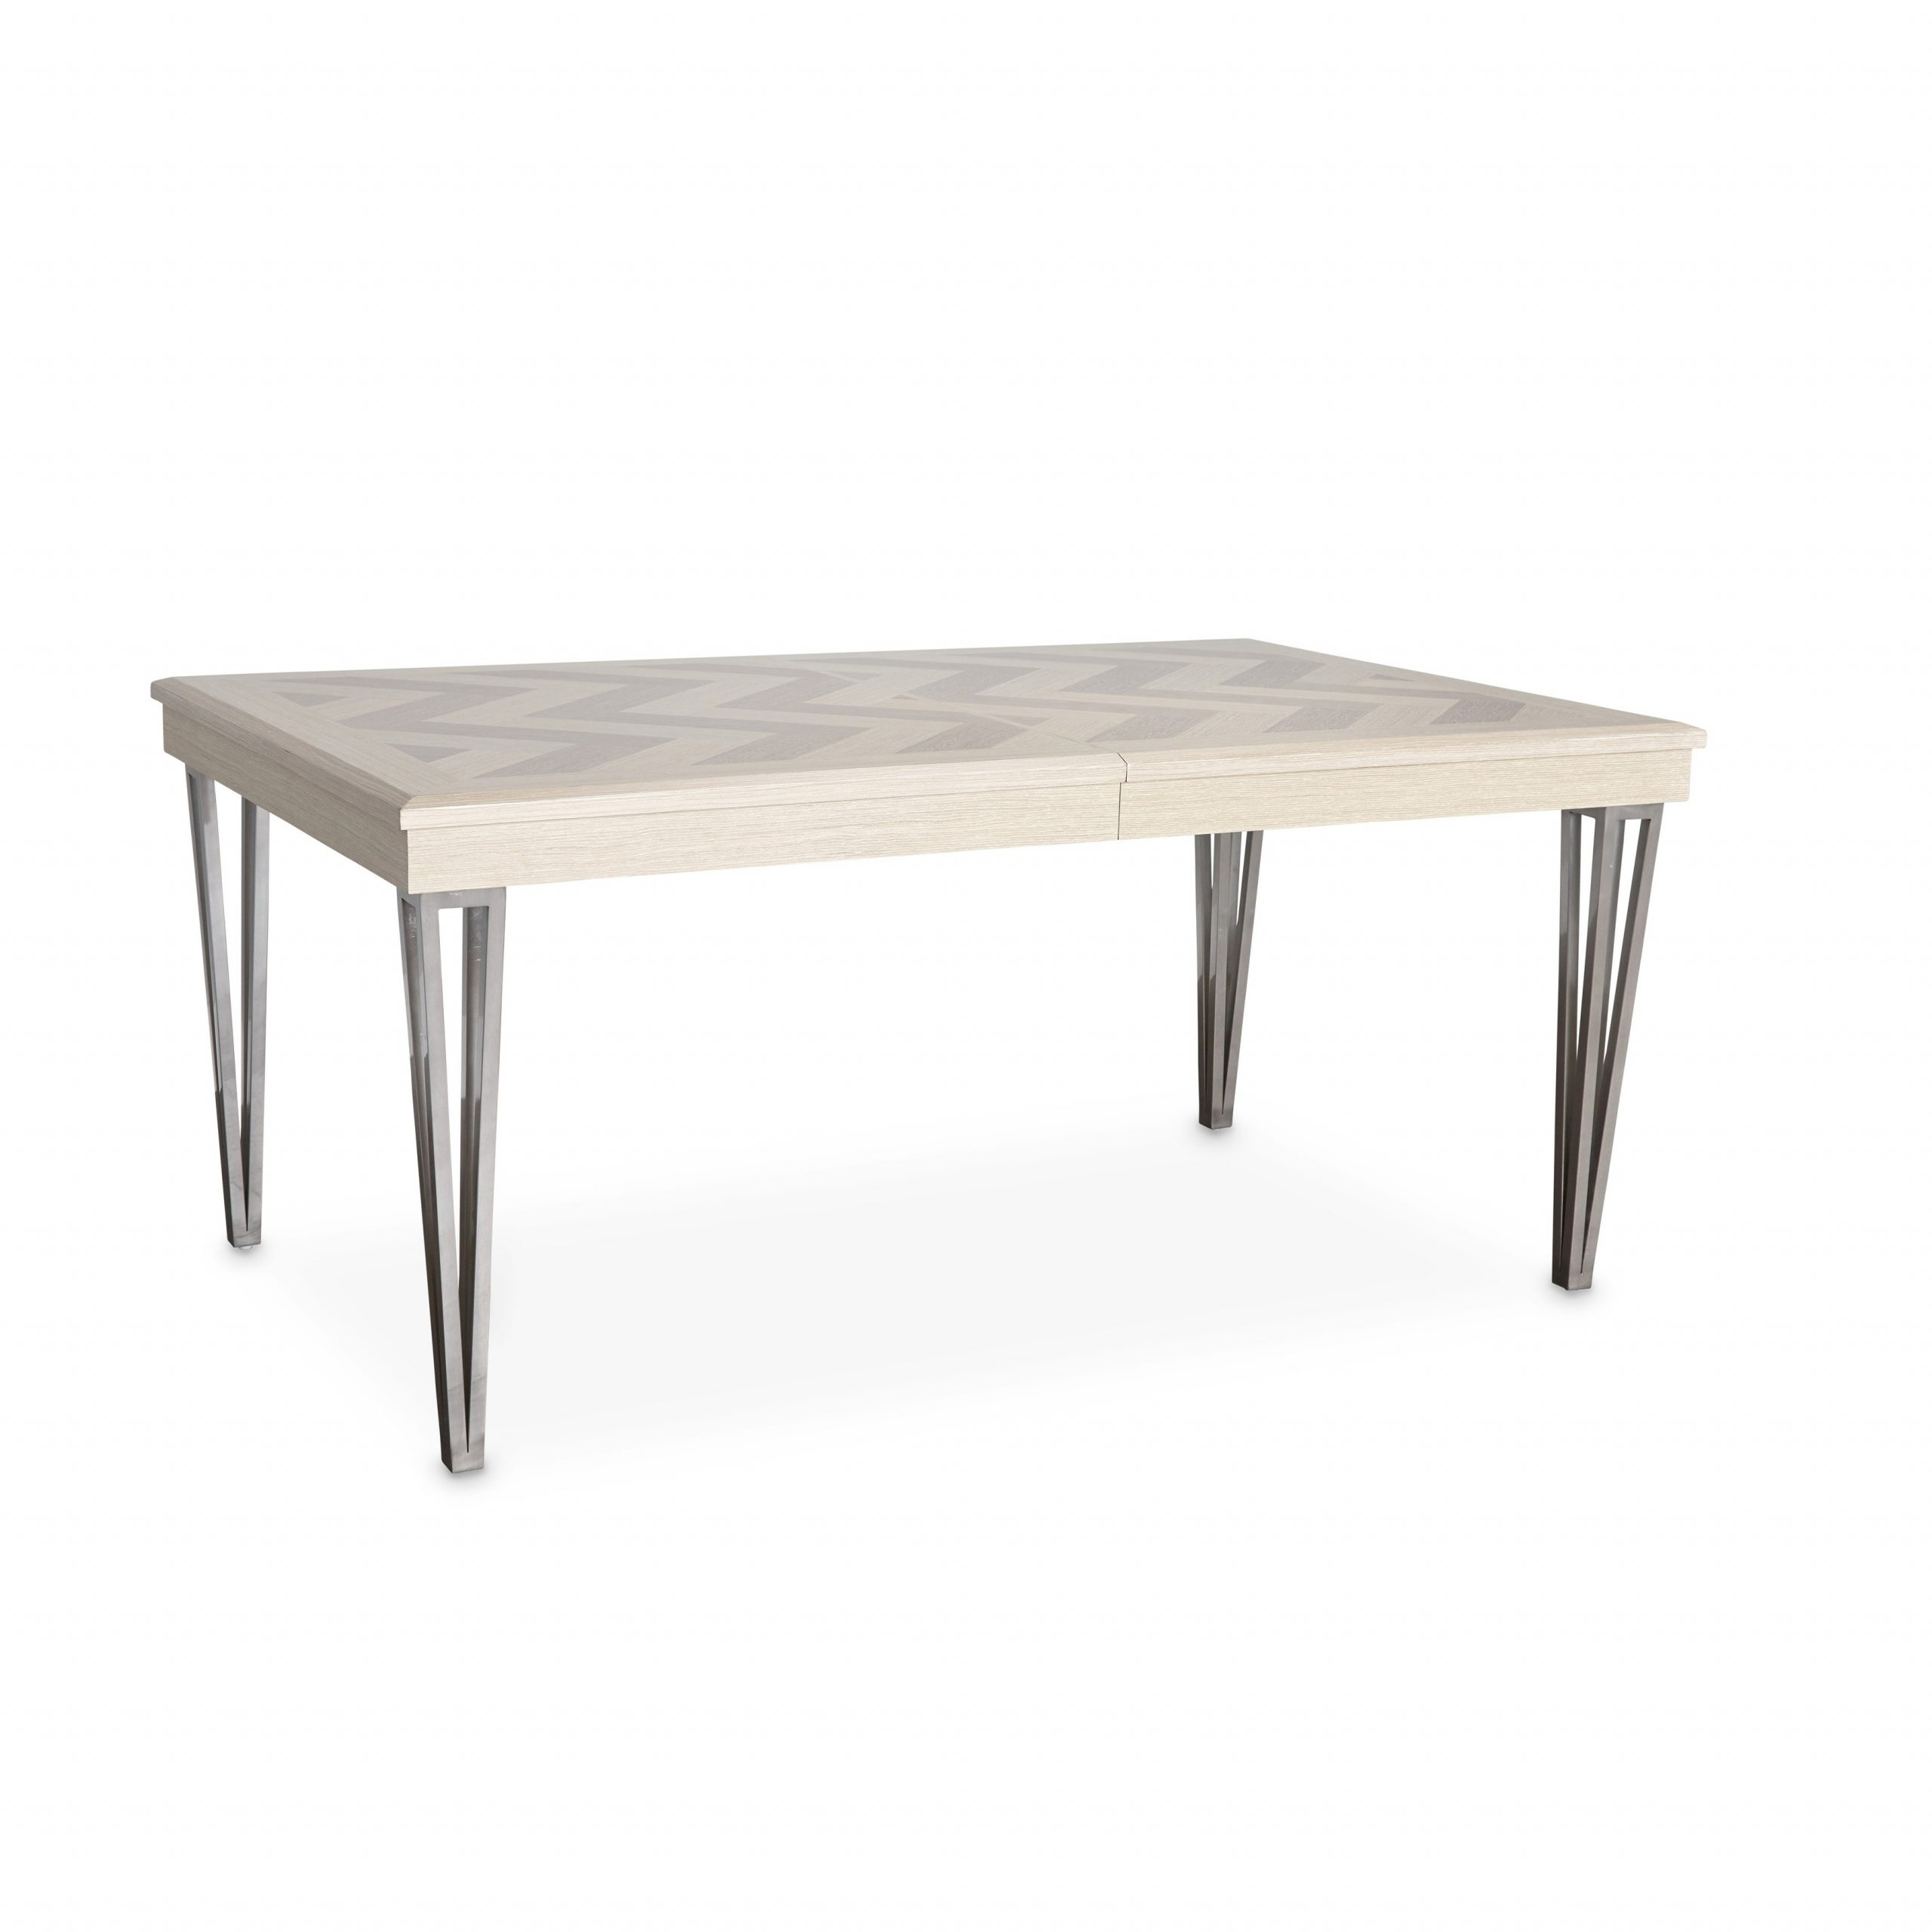 Newest Buy Michael Amini Kitchen & Dining Room Tables Online At in Menlo Reclaimed Wood Extending Dining Tables